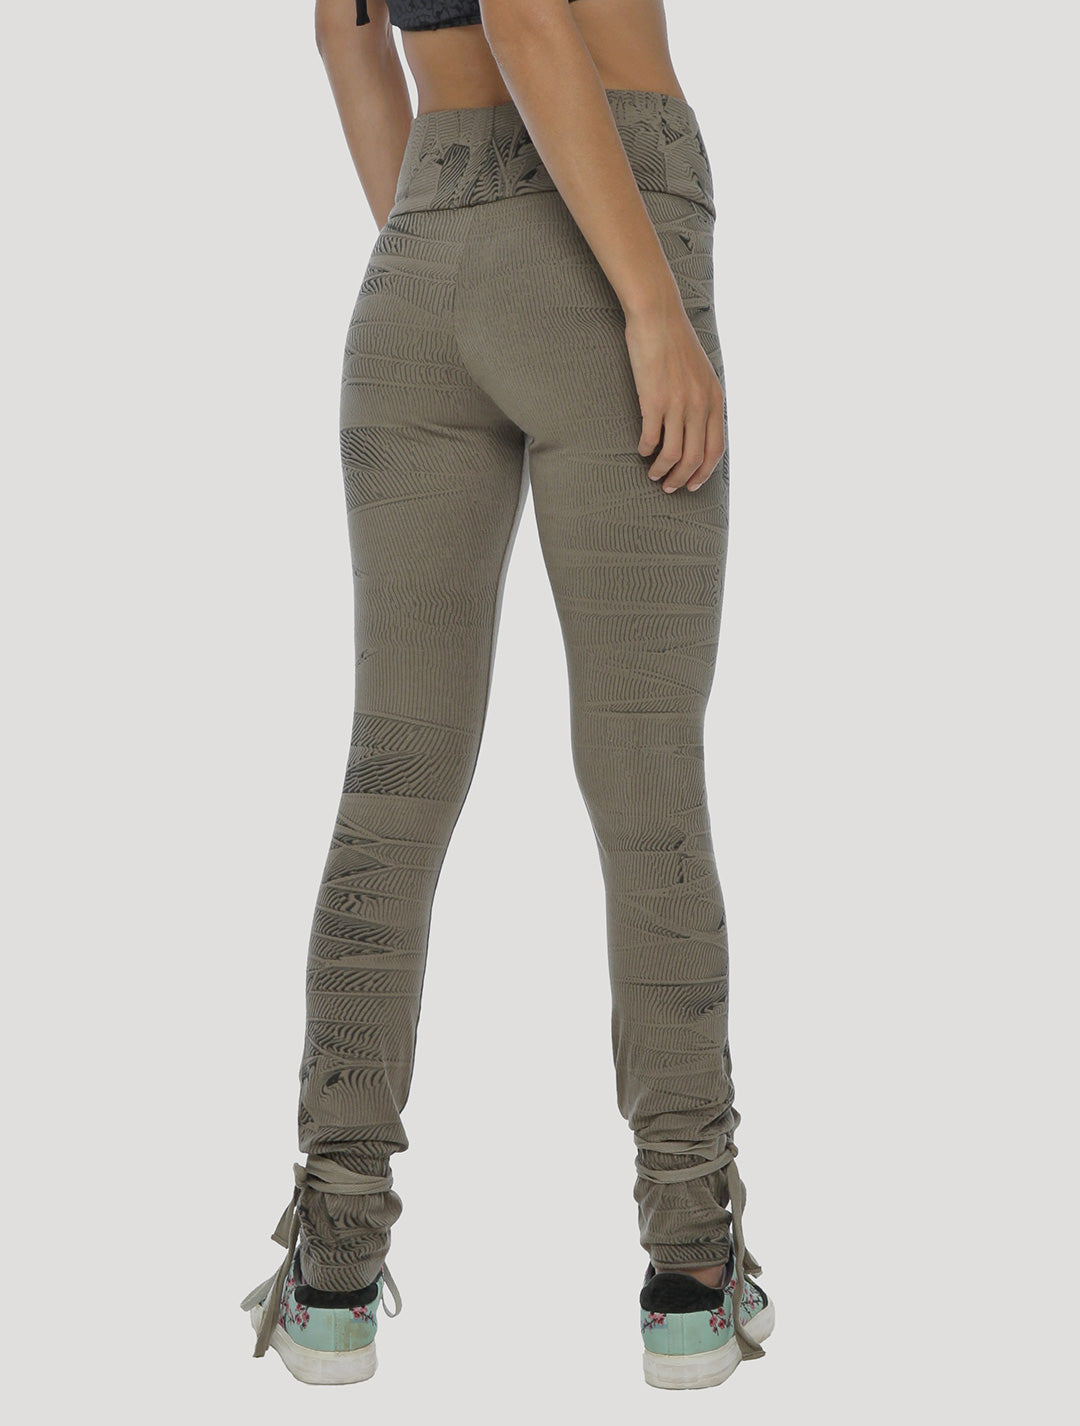 Crystal High Foldover Long Leggings - Psylo